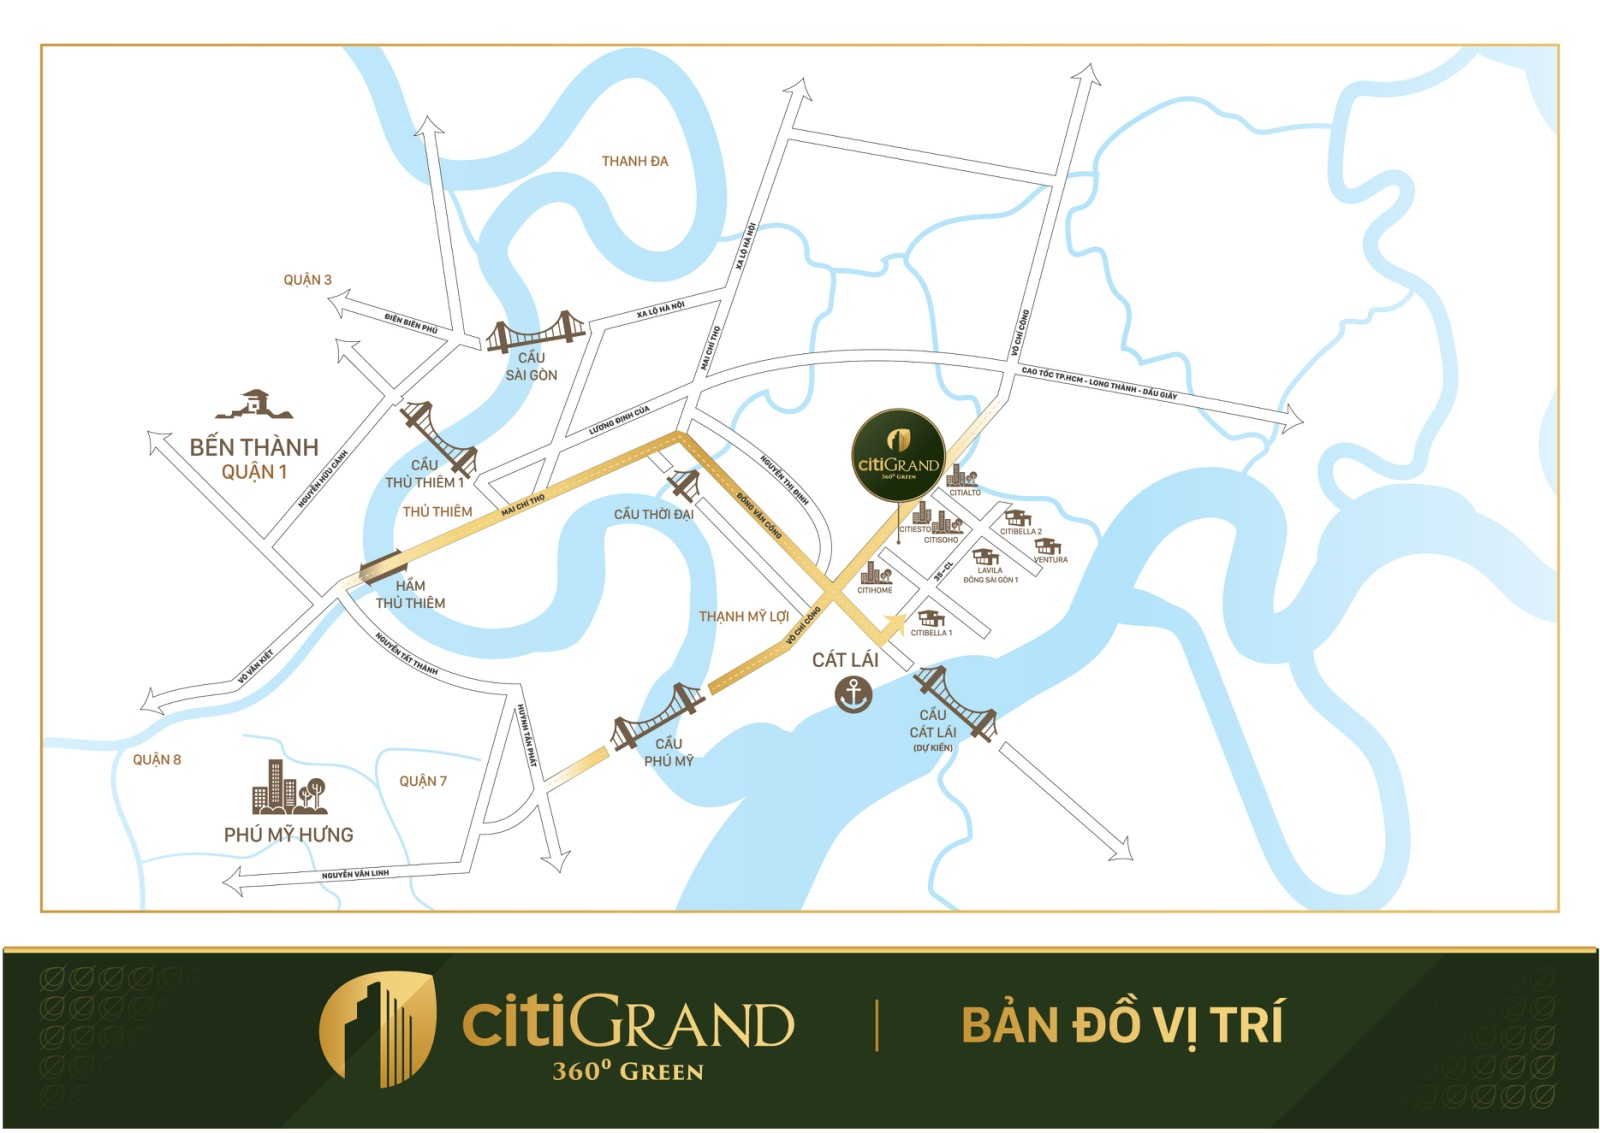 vi tri CitiGrand; vi tri can ho CitiGrand; Du an Can ho CitiGrand, vi tri Citi Grand; vi tri can ho Citi Grand; vi tri du an can ho Citi Grand